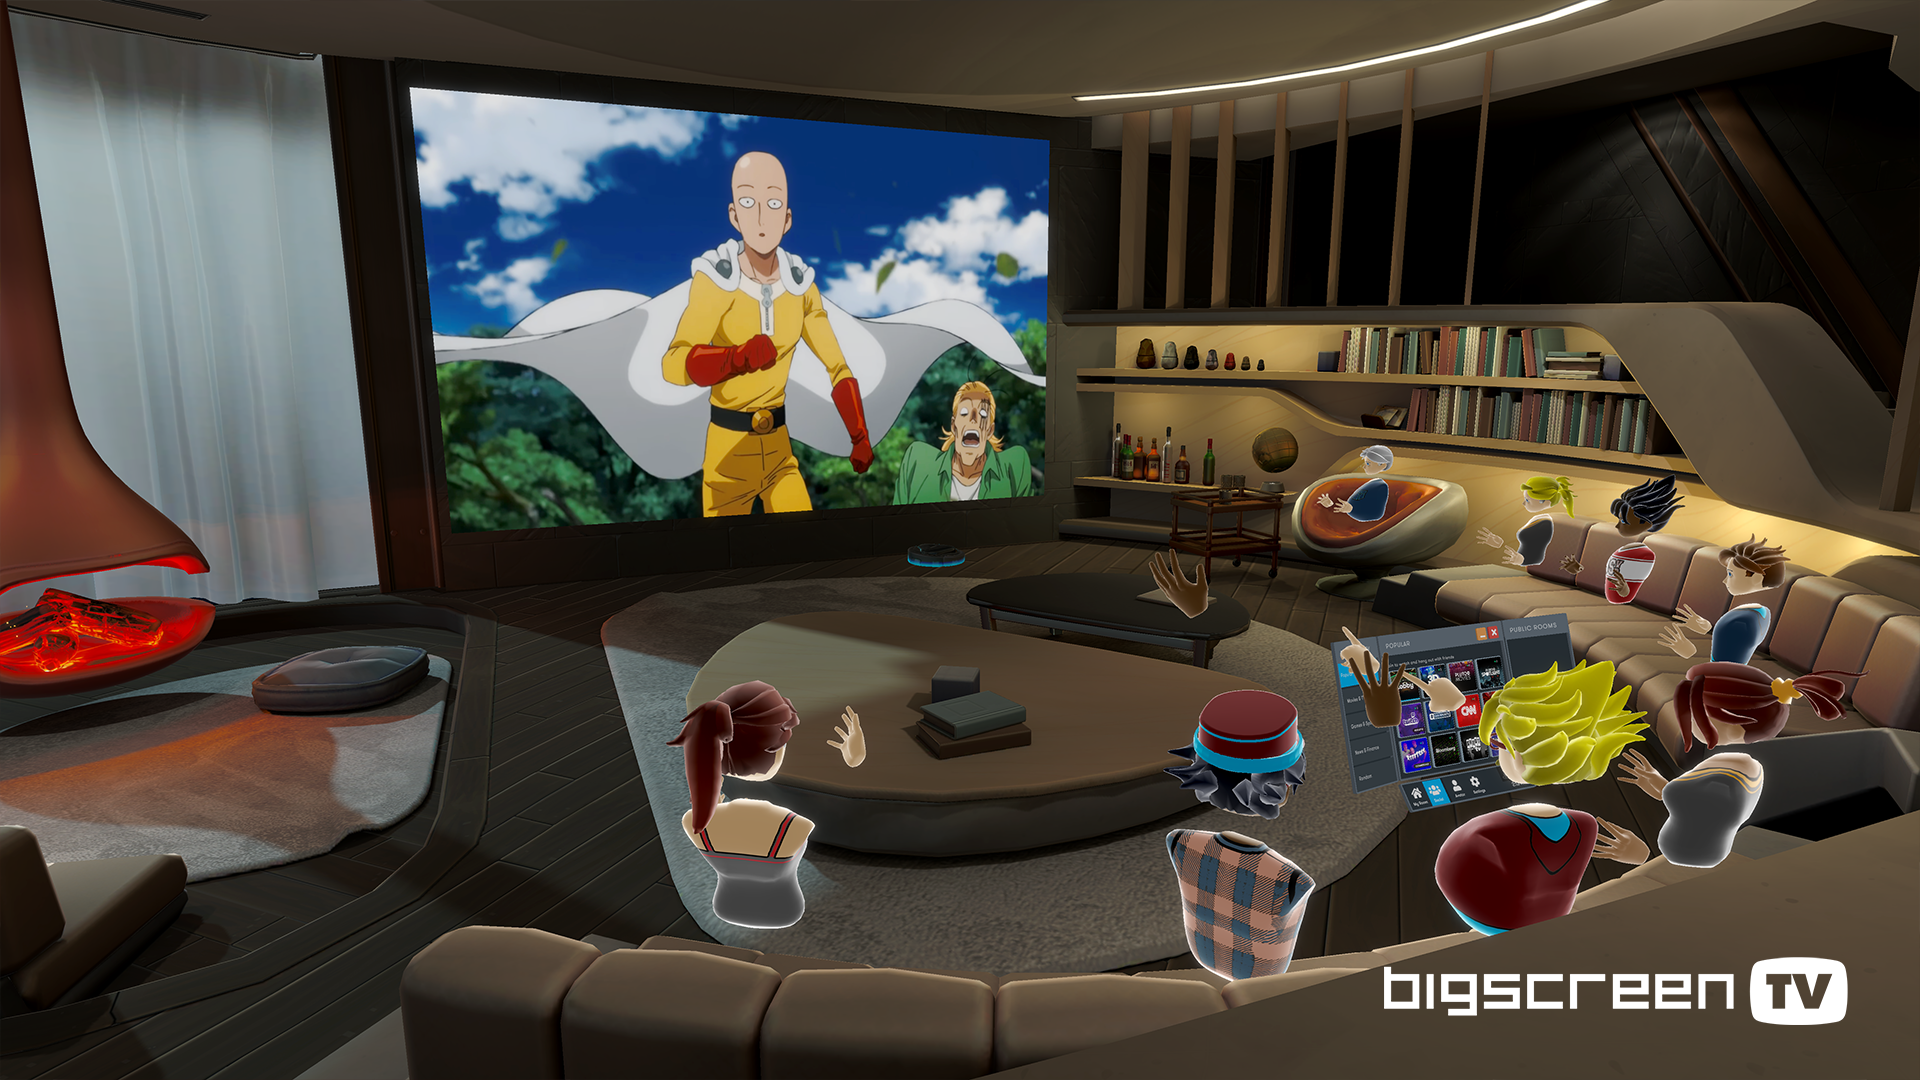 Introducing BIGSCREEN TV: watch movies, news, Twitch, sports